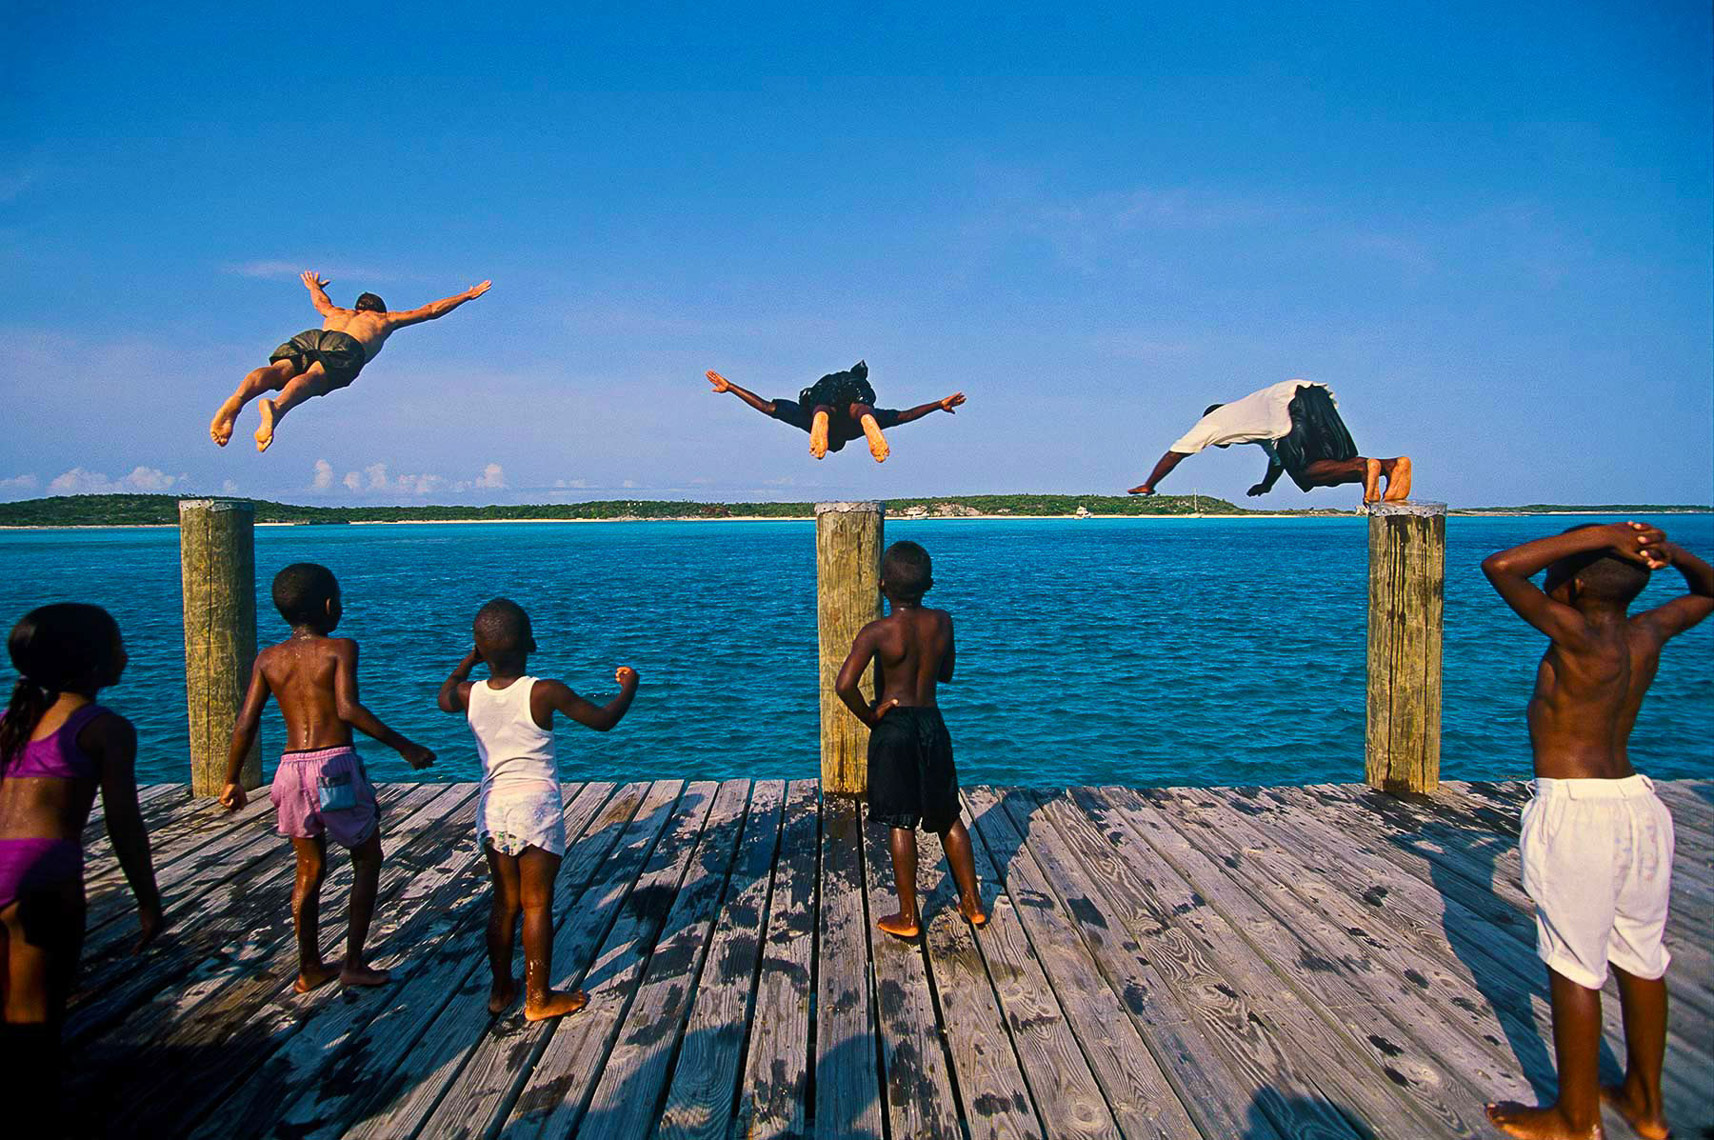 051-Divers-children-Exuma